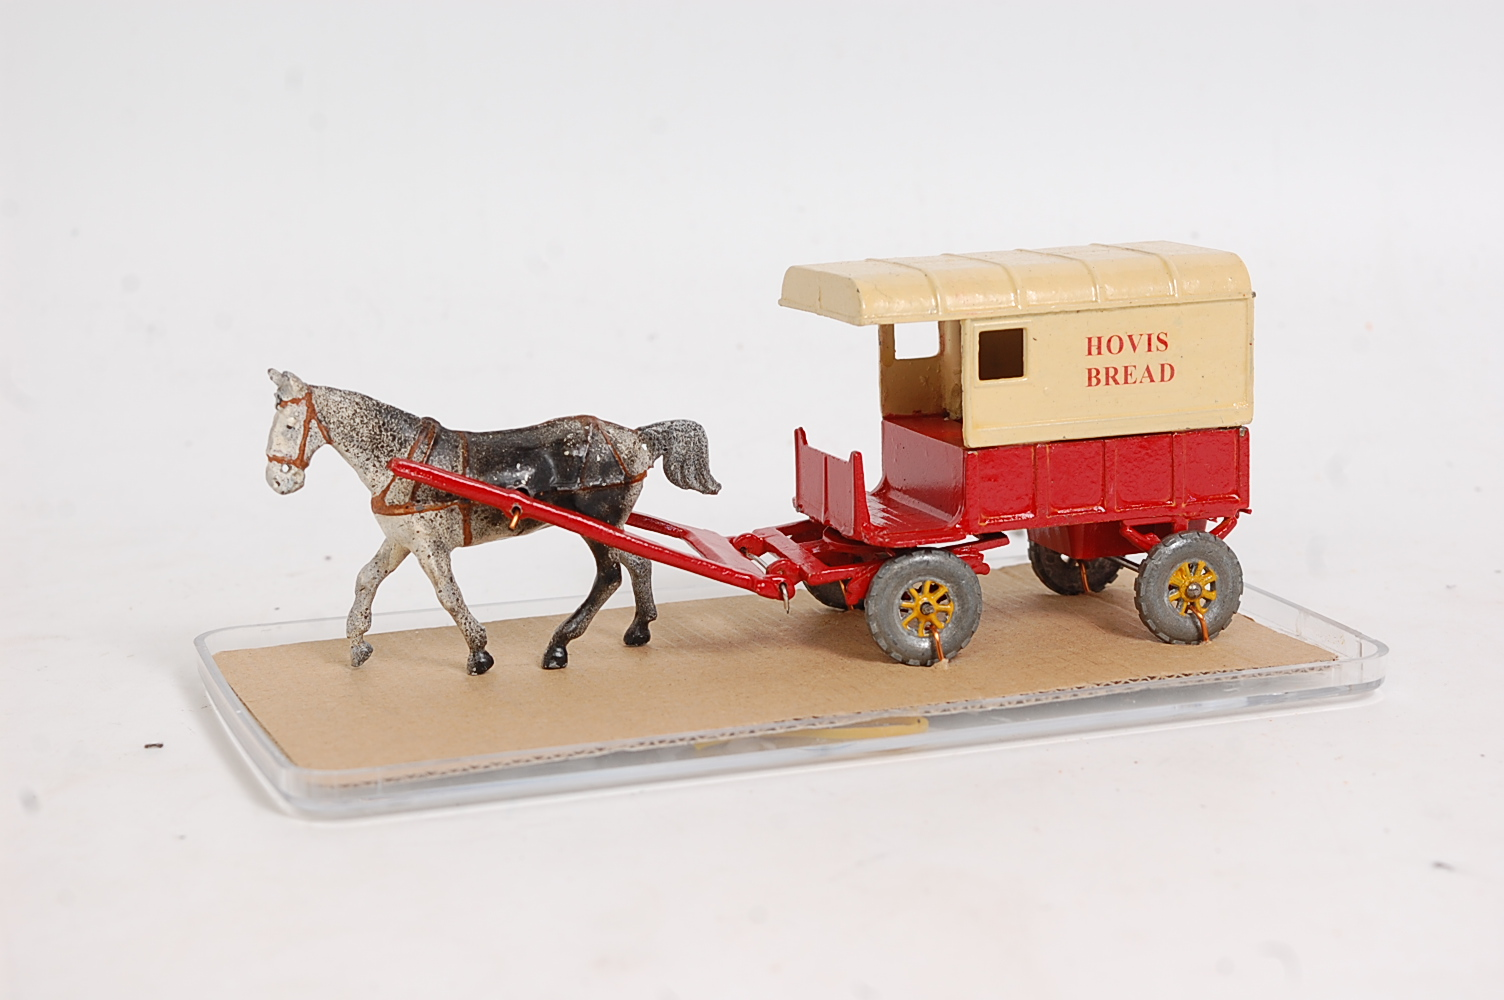 A Charbens 1950s repainted model of a lead horsedrawn Hovis Bread delivery cart, comprising red